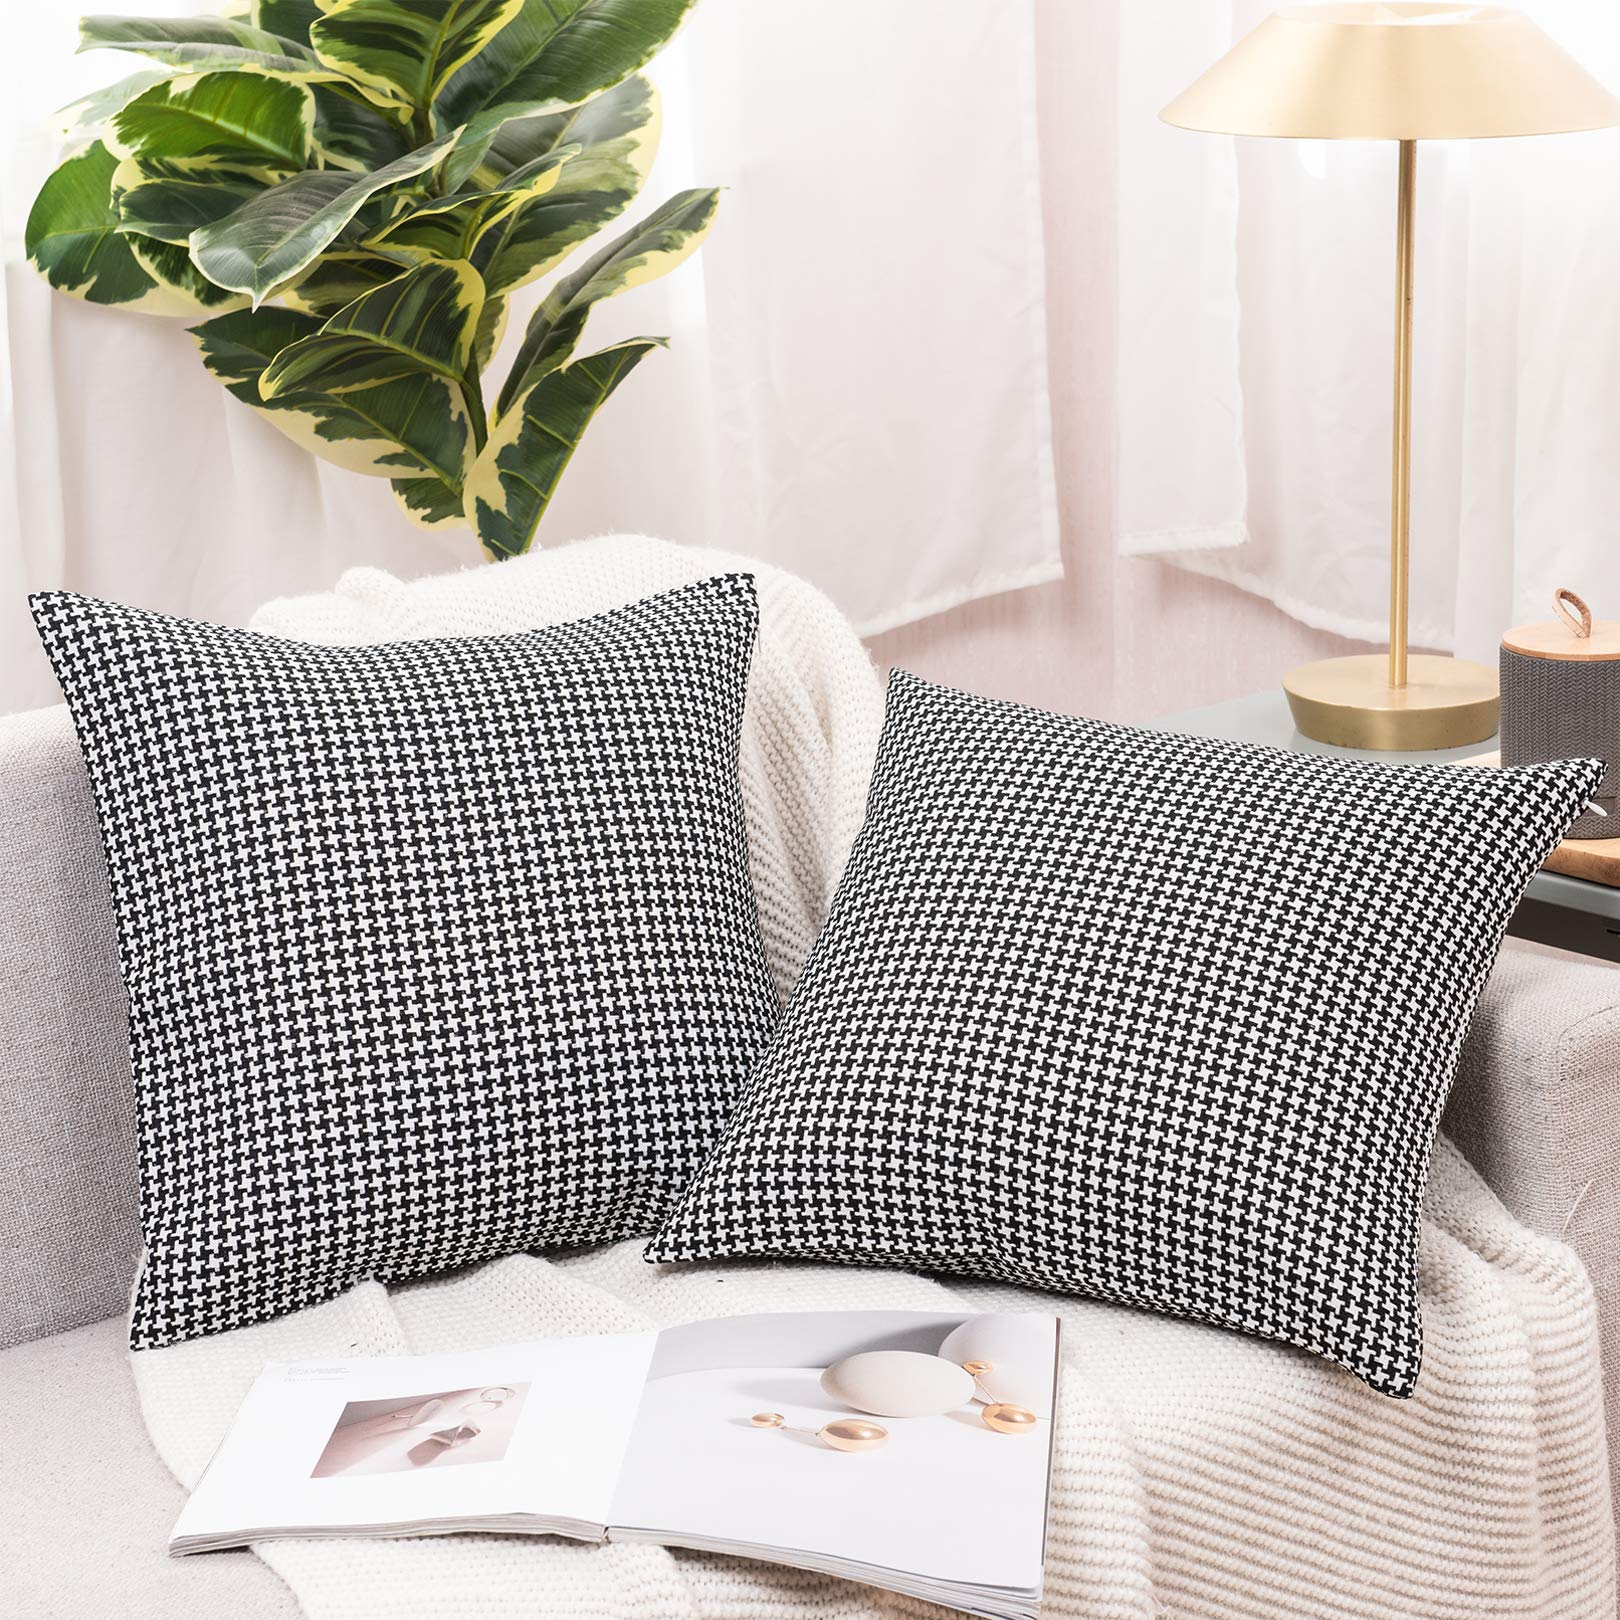 Basic Model Set of 2 Houndstooth Throw Pillow Covers Decorative Square Pillow Case Jacquard Cushion Cover for Sofa Living Room, 18 x 18 Inches